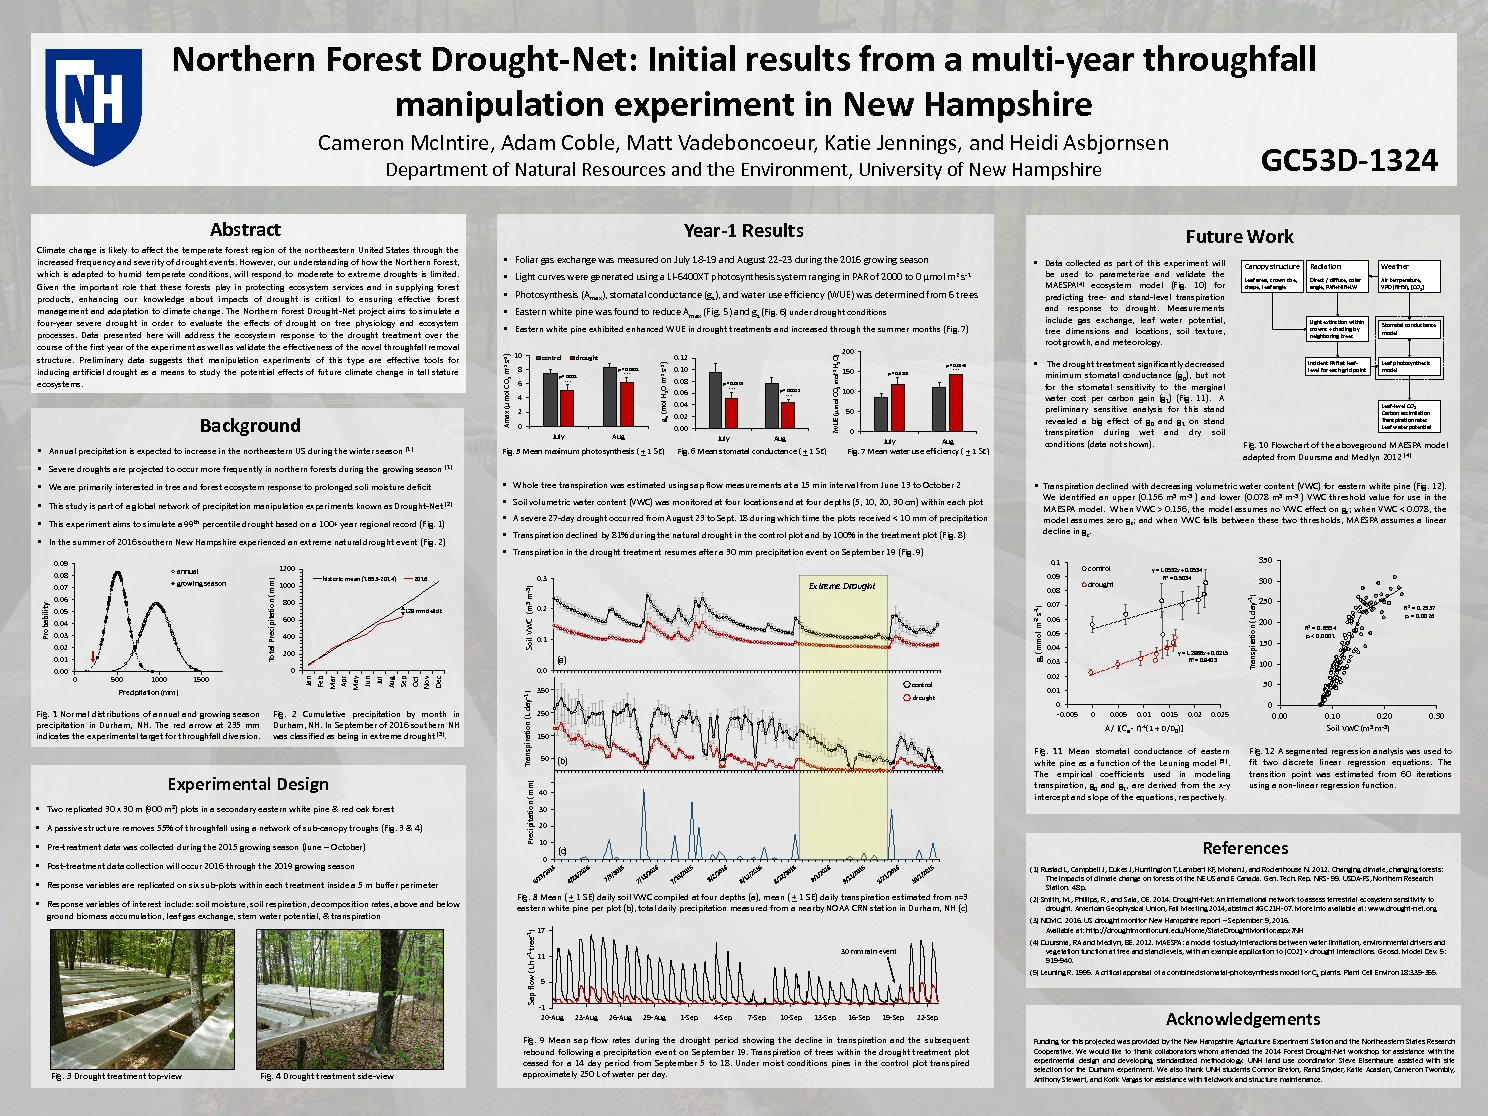 Northern Forest Drought-Net: Initial Results From A Multi-Year Throughfall Manipulation Experiment In New Hampshire by cm11